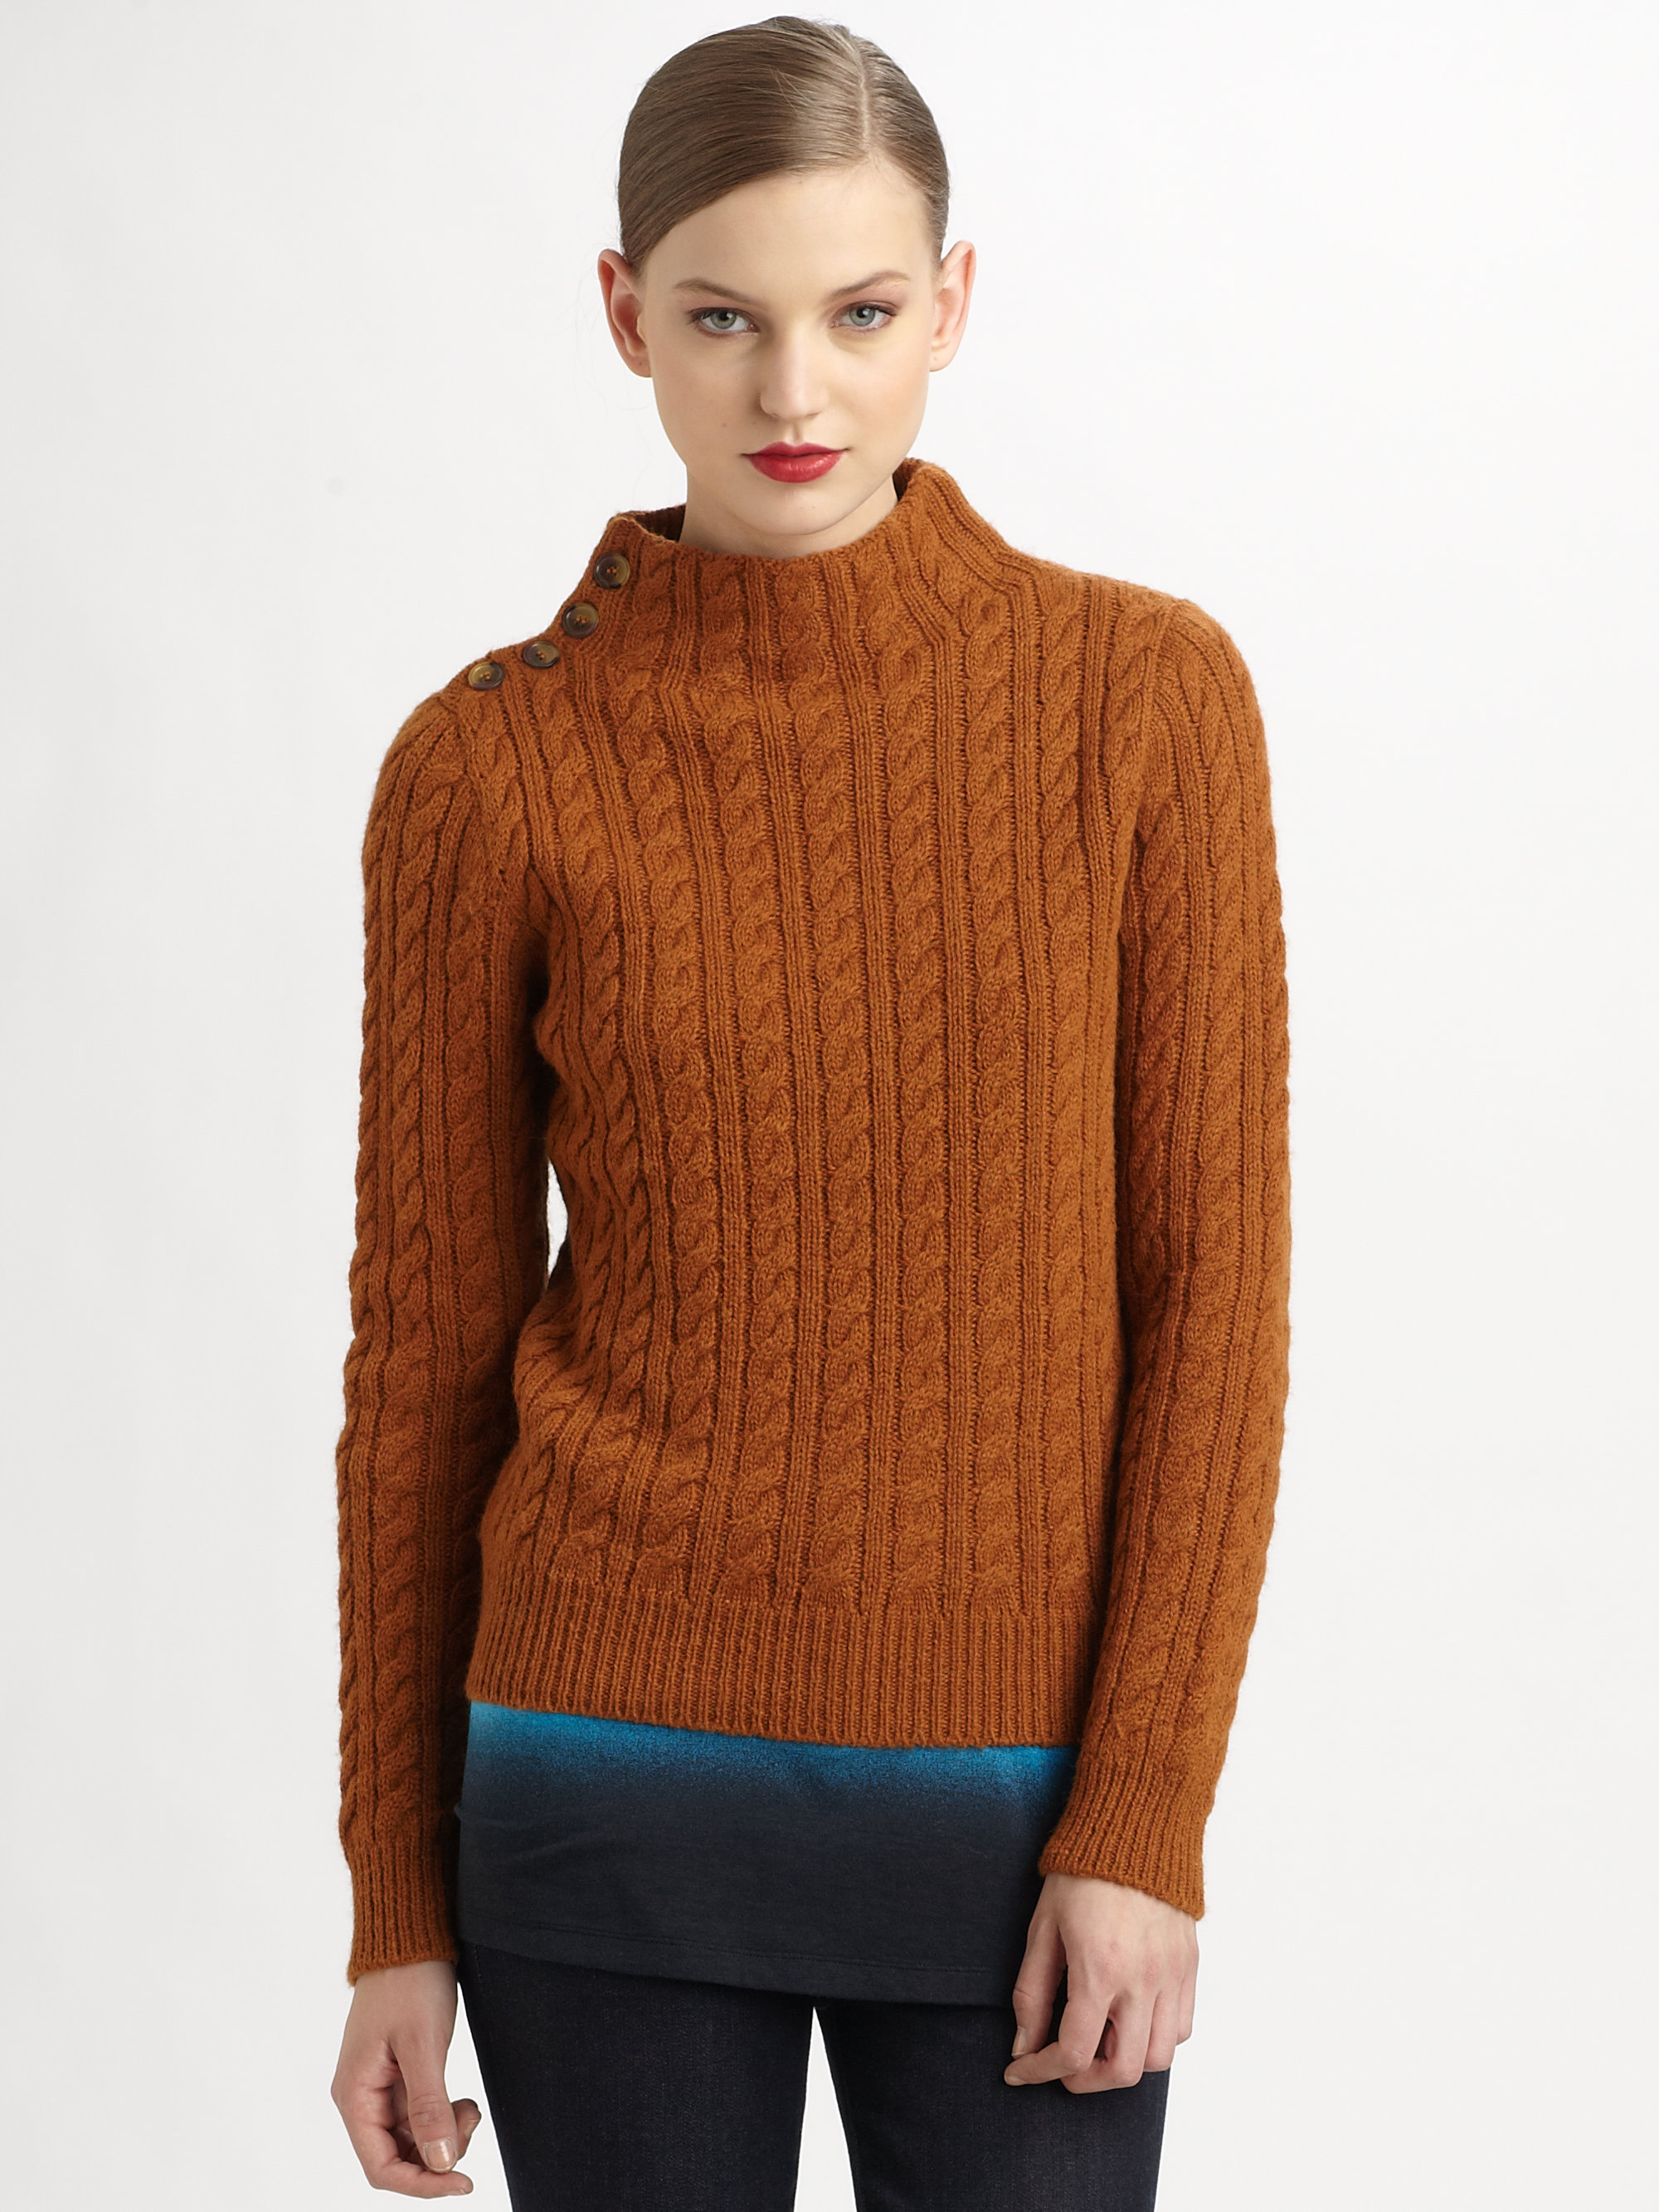 Marc by marc jacobs Mira Wool Sweater in Orange | Lyst